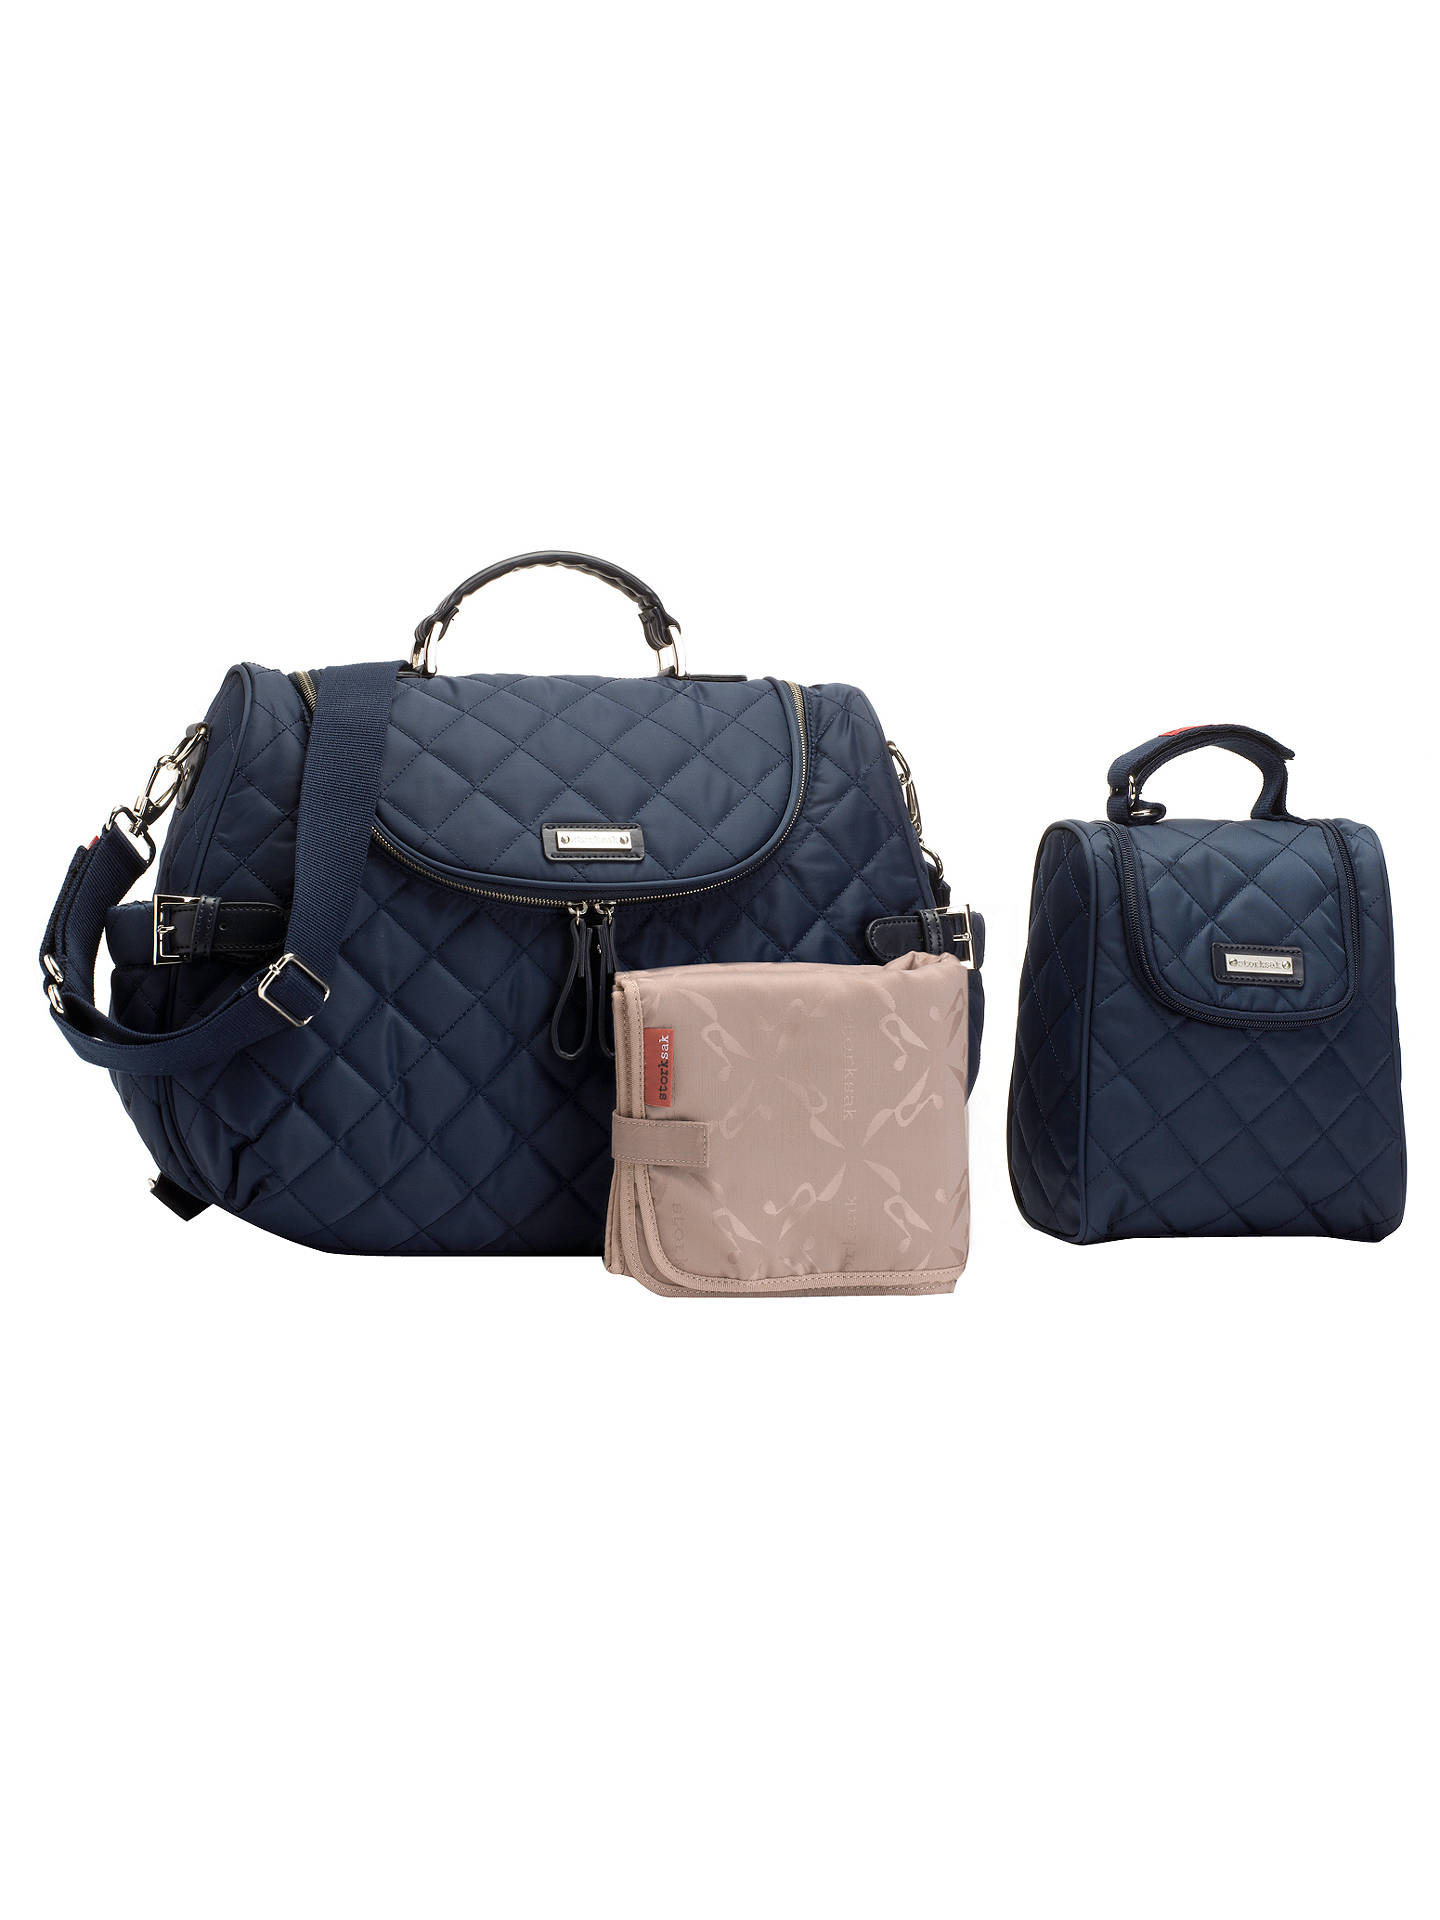 Storksak Poppy Changing Bag Navy At John Lewis Amp Partners